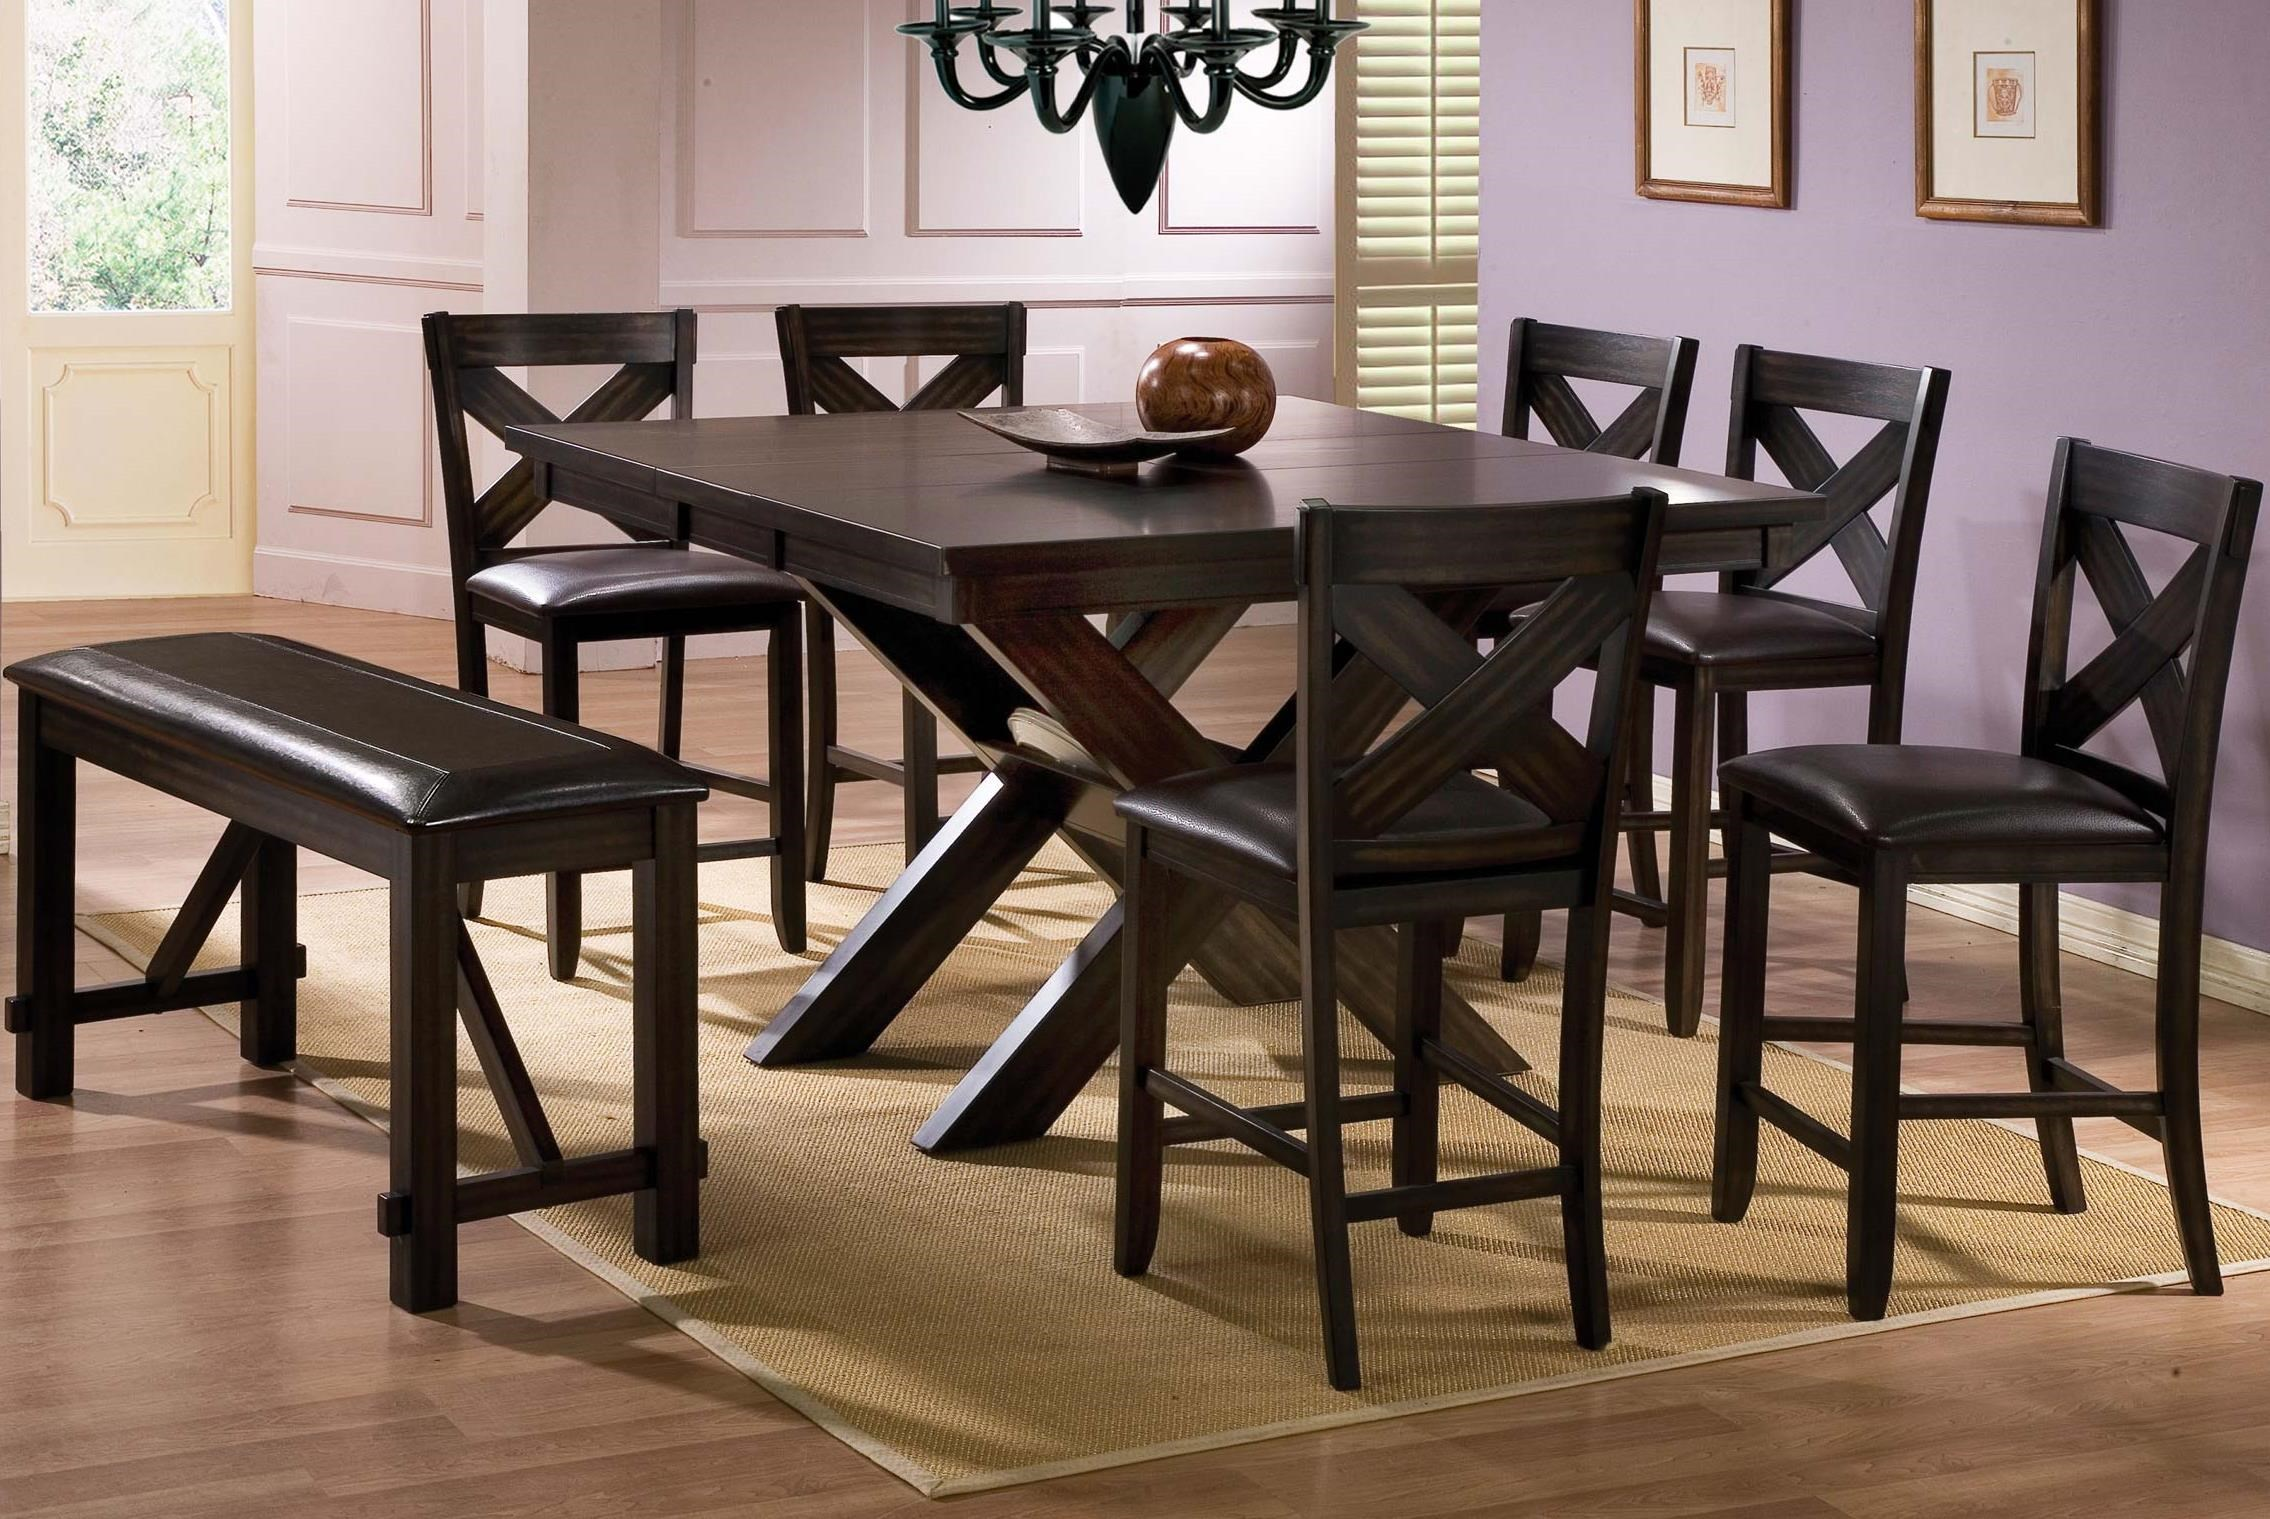 height of dining table bench winners only edgewater piece counter height dining set with bench